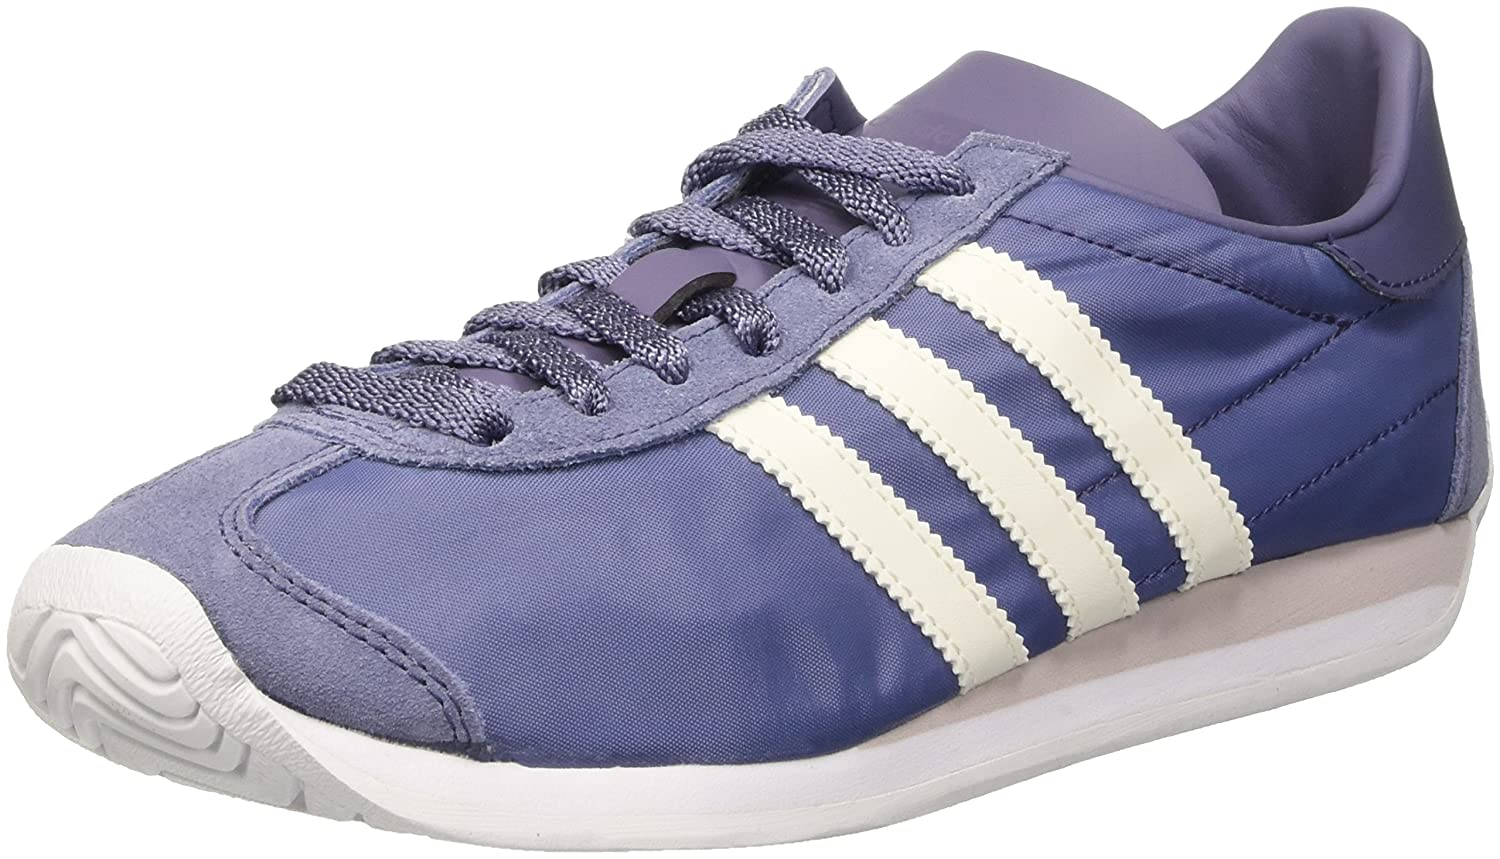 new style 9d2e9 1ad97 Amazon.com  adidas Originals Country Og Womens Trainers Sneakers Shoes (UK  4.5 US 6 EU 37 13, Purple Off White S32204)  Fashion Sneakers